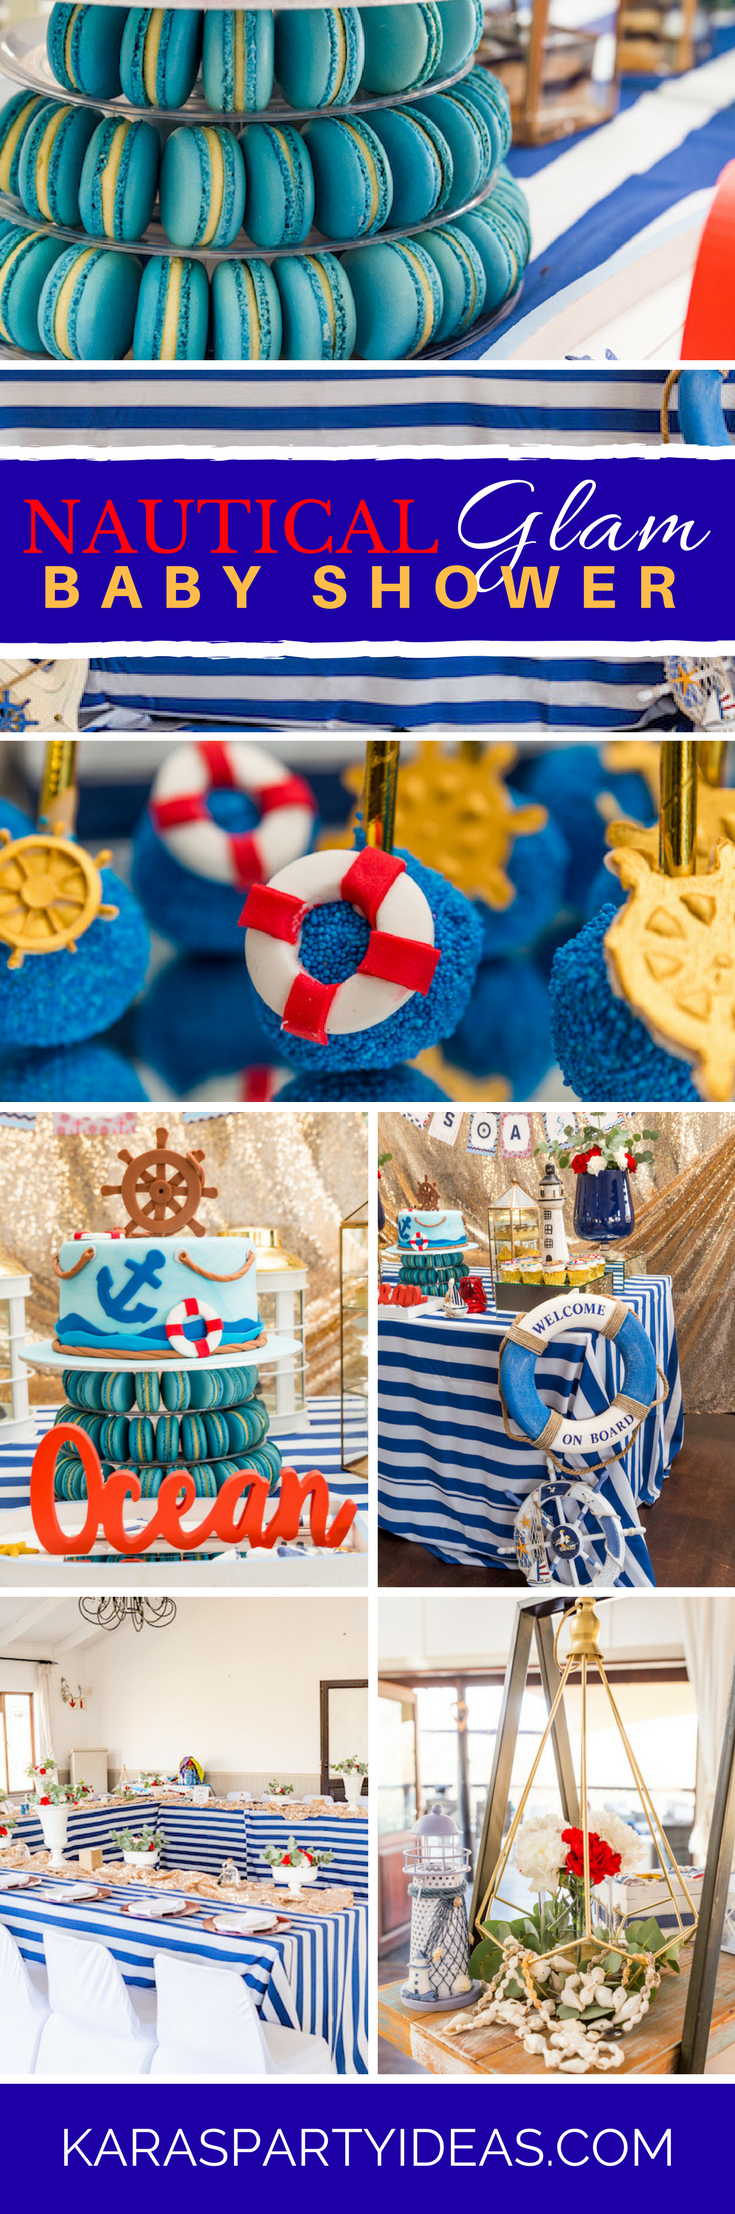 Nautical Glam Baby Shower via Kara's Party Ideas - KarasPartyIdeas.com